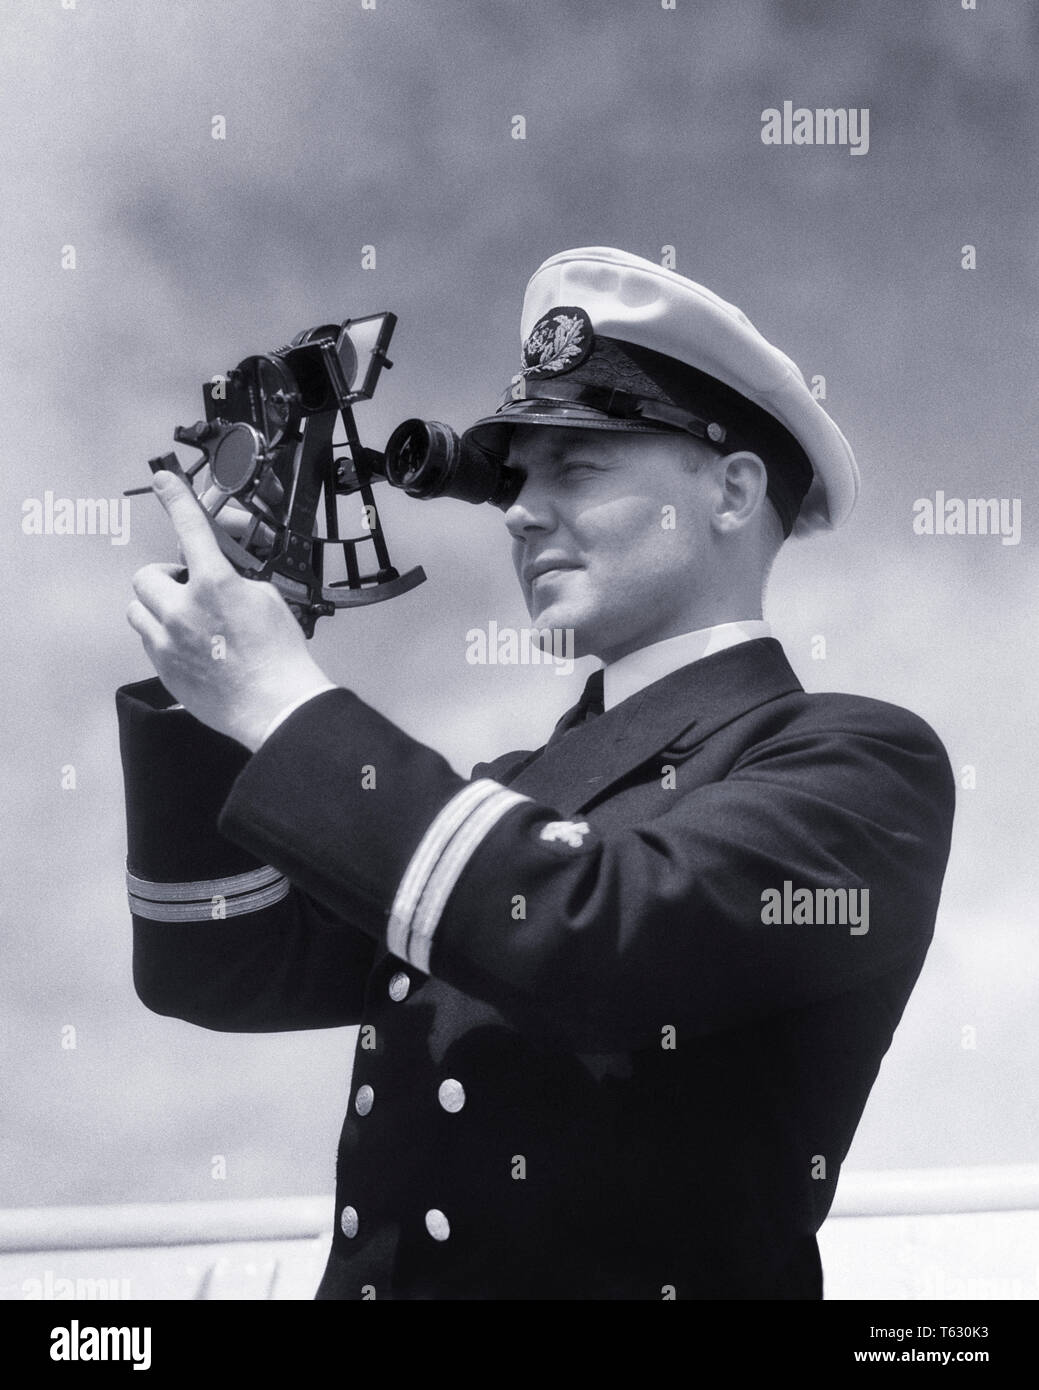 1930s SHIP'S OFFICER USING SEXTANT TO MEASURE ANGULAR DISTANCES BETWEEN OBJECTS TOOL USED IN CELESTIAL NAVIGATION - s5654 HAR001 HARS TRANSPORTATION B&W SEXTANT SKILL OCCUPATION SKILLS ADVENTURE NAVAL CAREERS NAVIGATION DIRECTION OBJECTS OCCUPATIONS USING CONNECTION USED CONCEPTUAL SHIP'S CELESTIAL ANGULAR NAVIGATIONAL PRECISION SHIPPING YOUNG ADULT MAN BLACK AND WHITE CAUCASIAN ETHNICITY HAR001 OLD FASHIONED - Stock Image